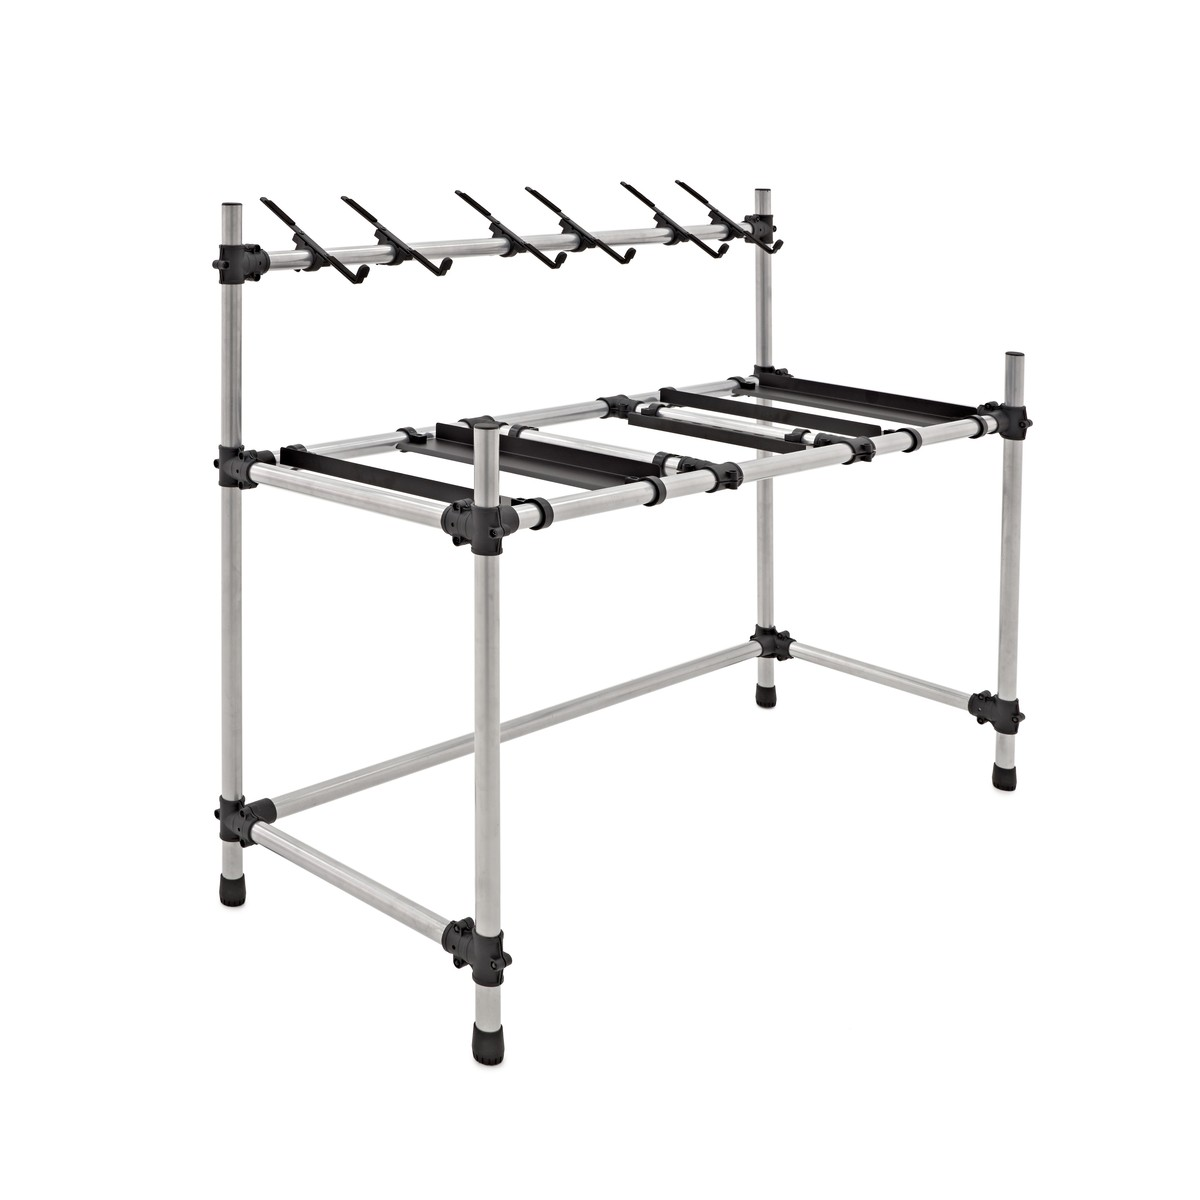 Deluxe Mobile Dj Stand By Gear4music At Gear4music